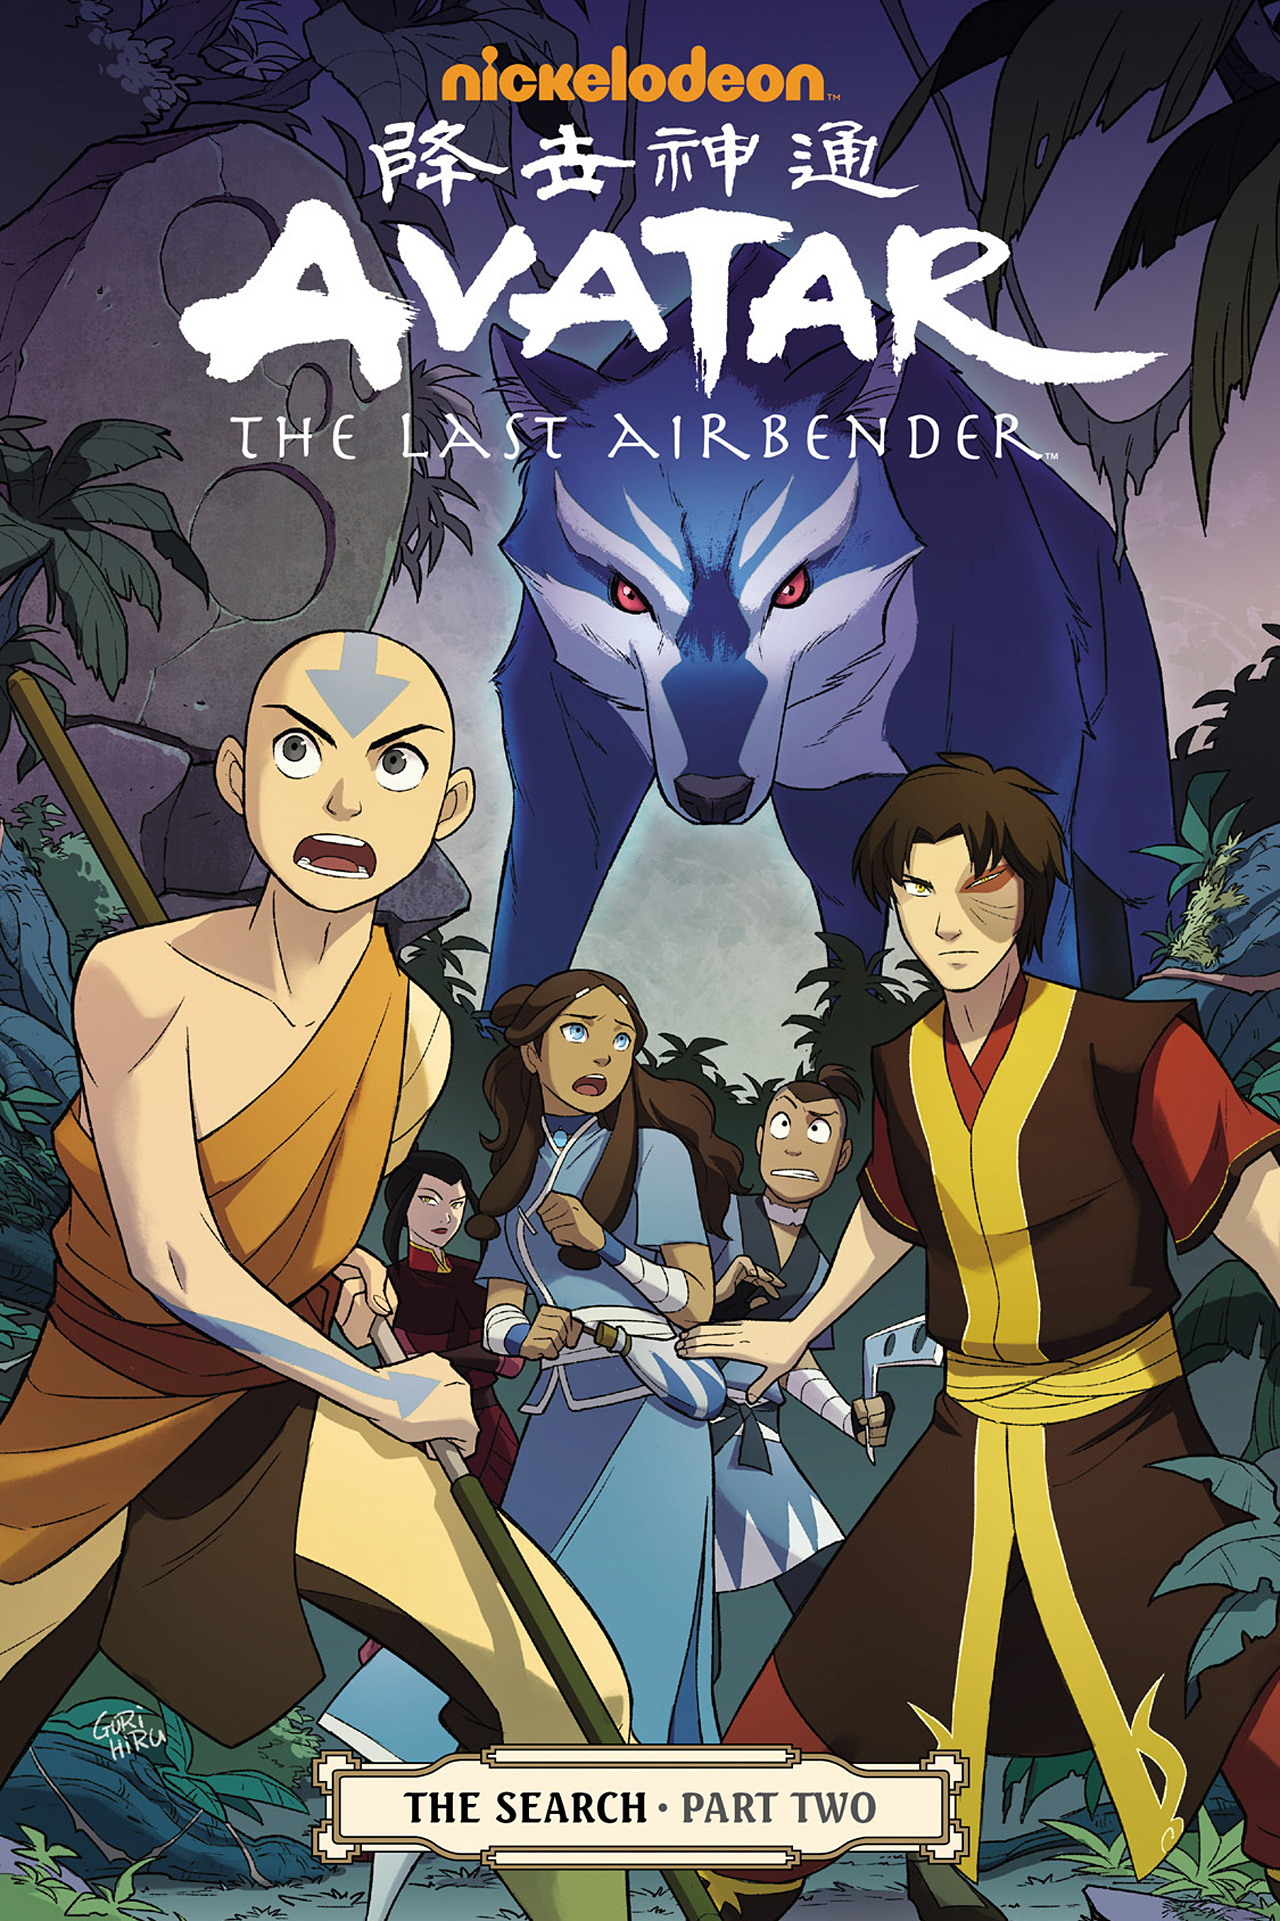 Nickelodeon Avatar: The Last Airbender - The Search Part_2 Page 1